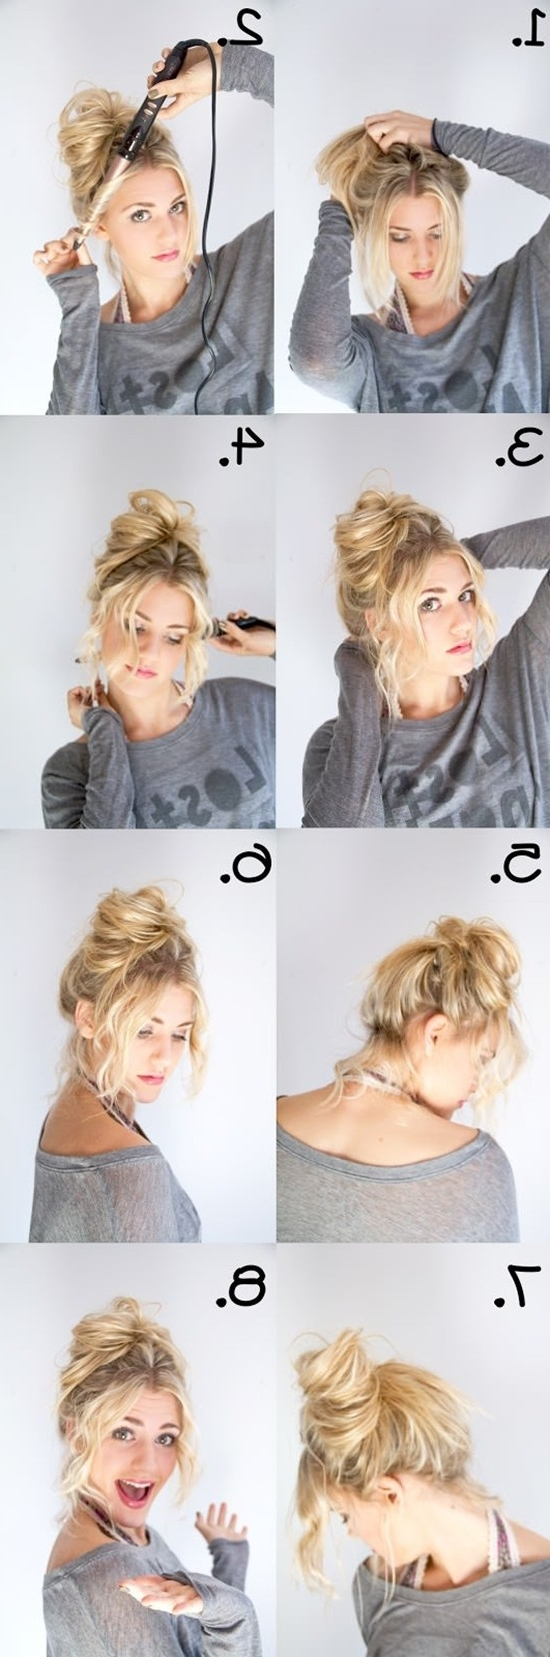 Seven Unconventional Knowledge About Easy Updos For Thin Pertaining To Easy Updos For Medium Thin Hair (View 15 of 15)